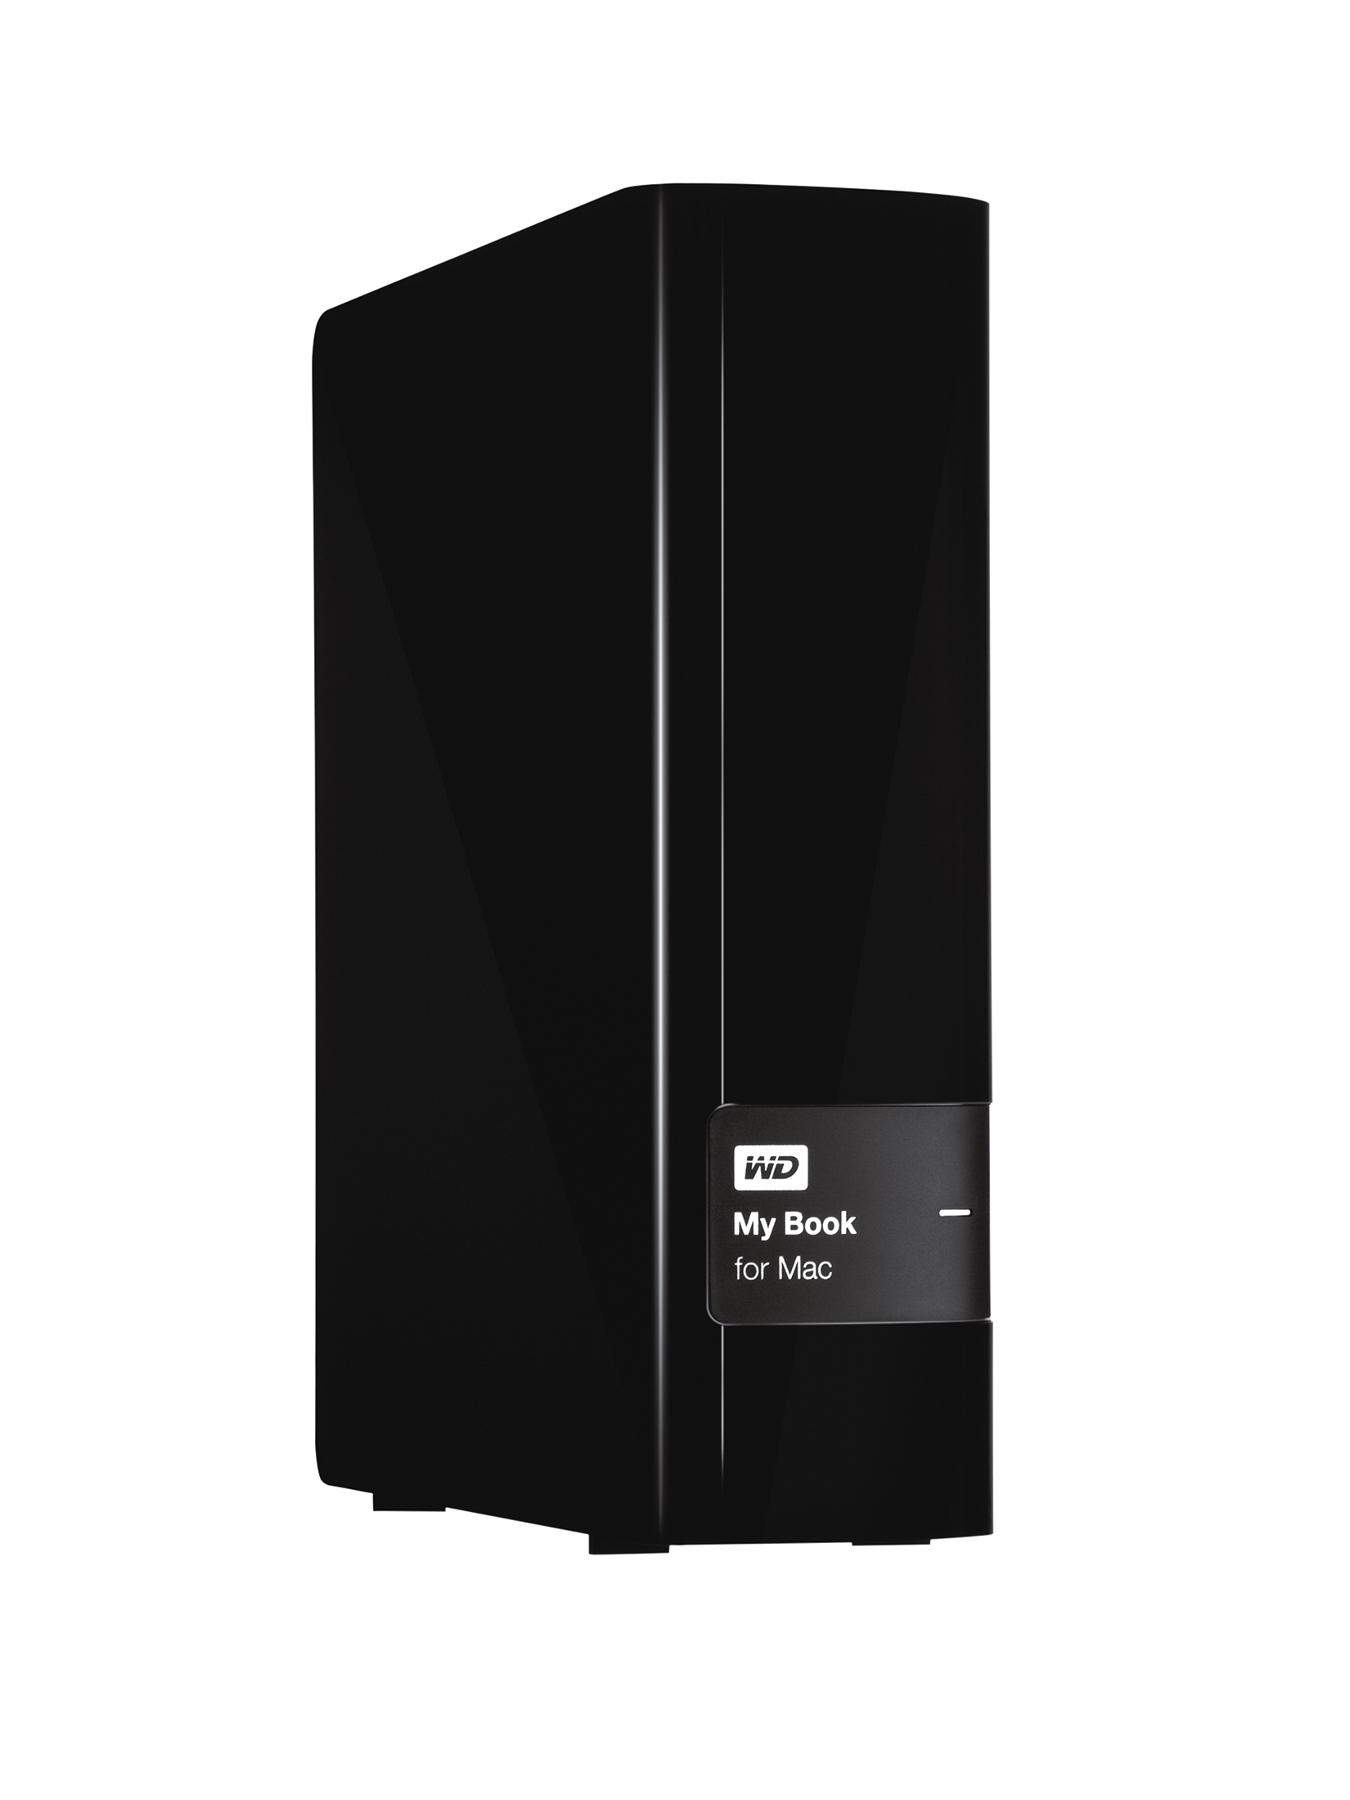 My Book for Mac 3Tb Desktop External Hard Drive - Black